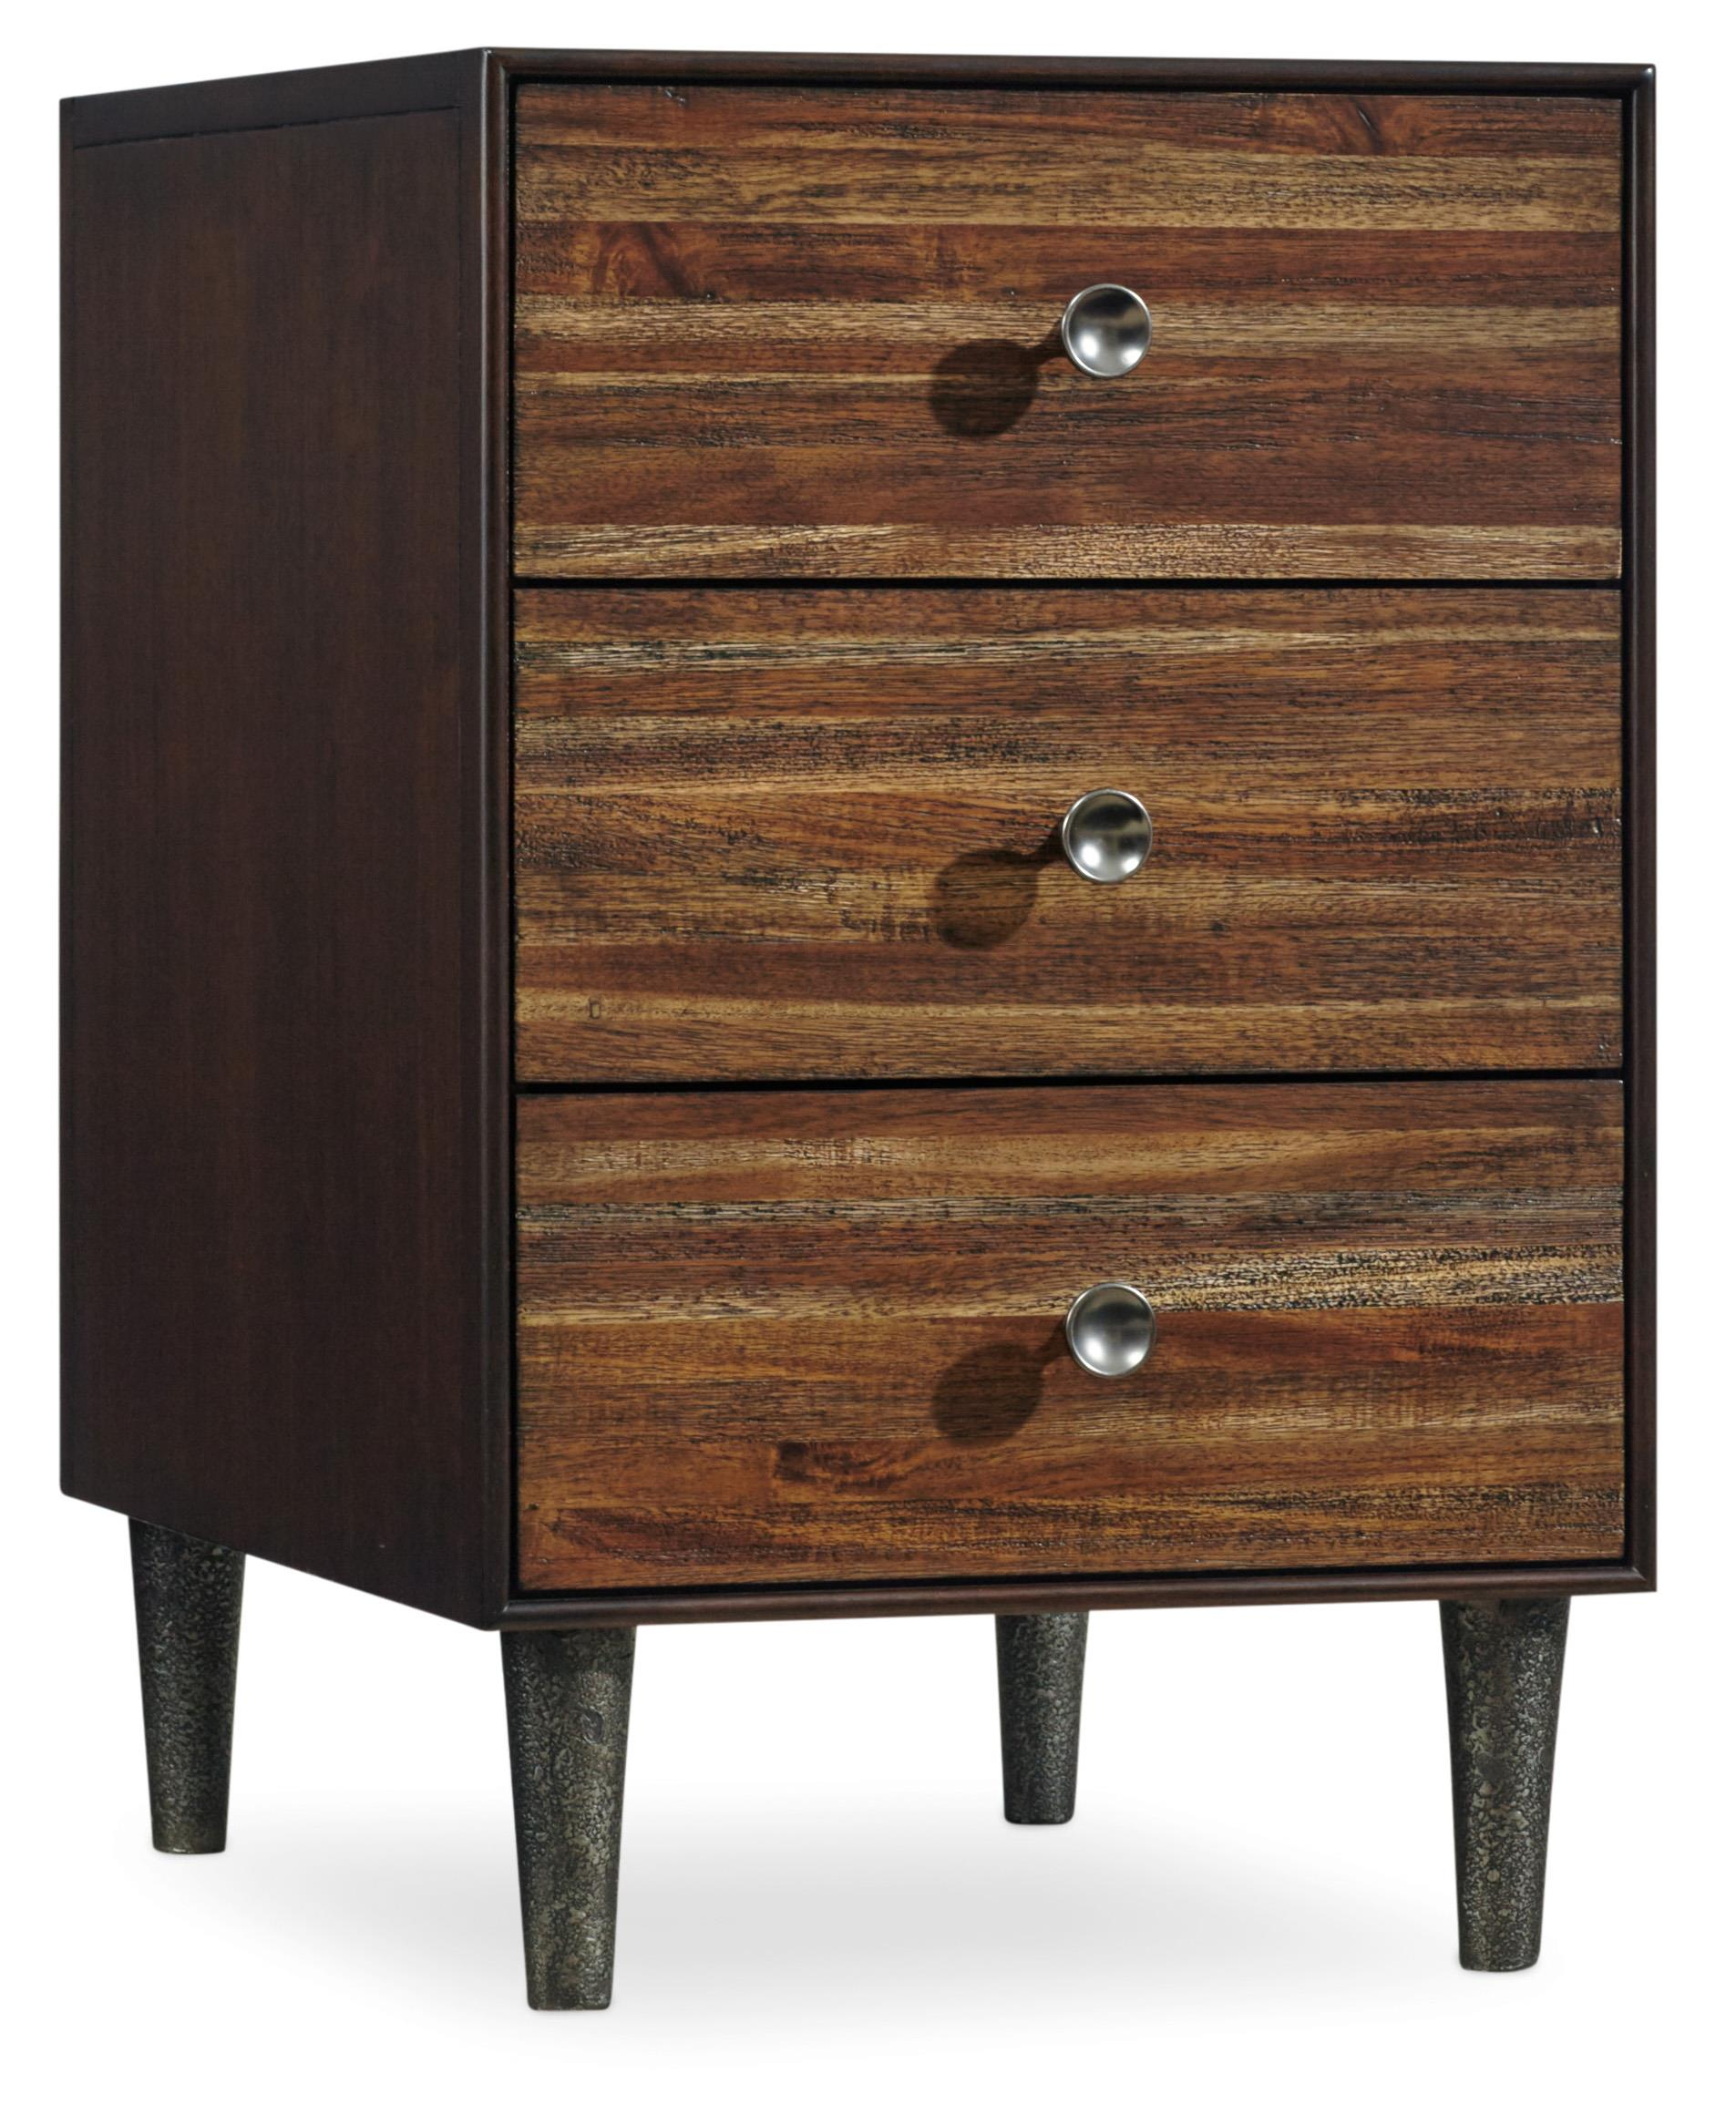 Hooker Furniture Studio 7H Indie Chairside Chest - Item Number: 5388-80114